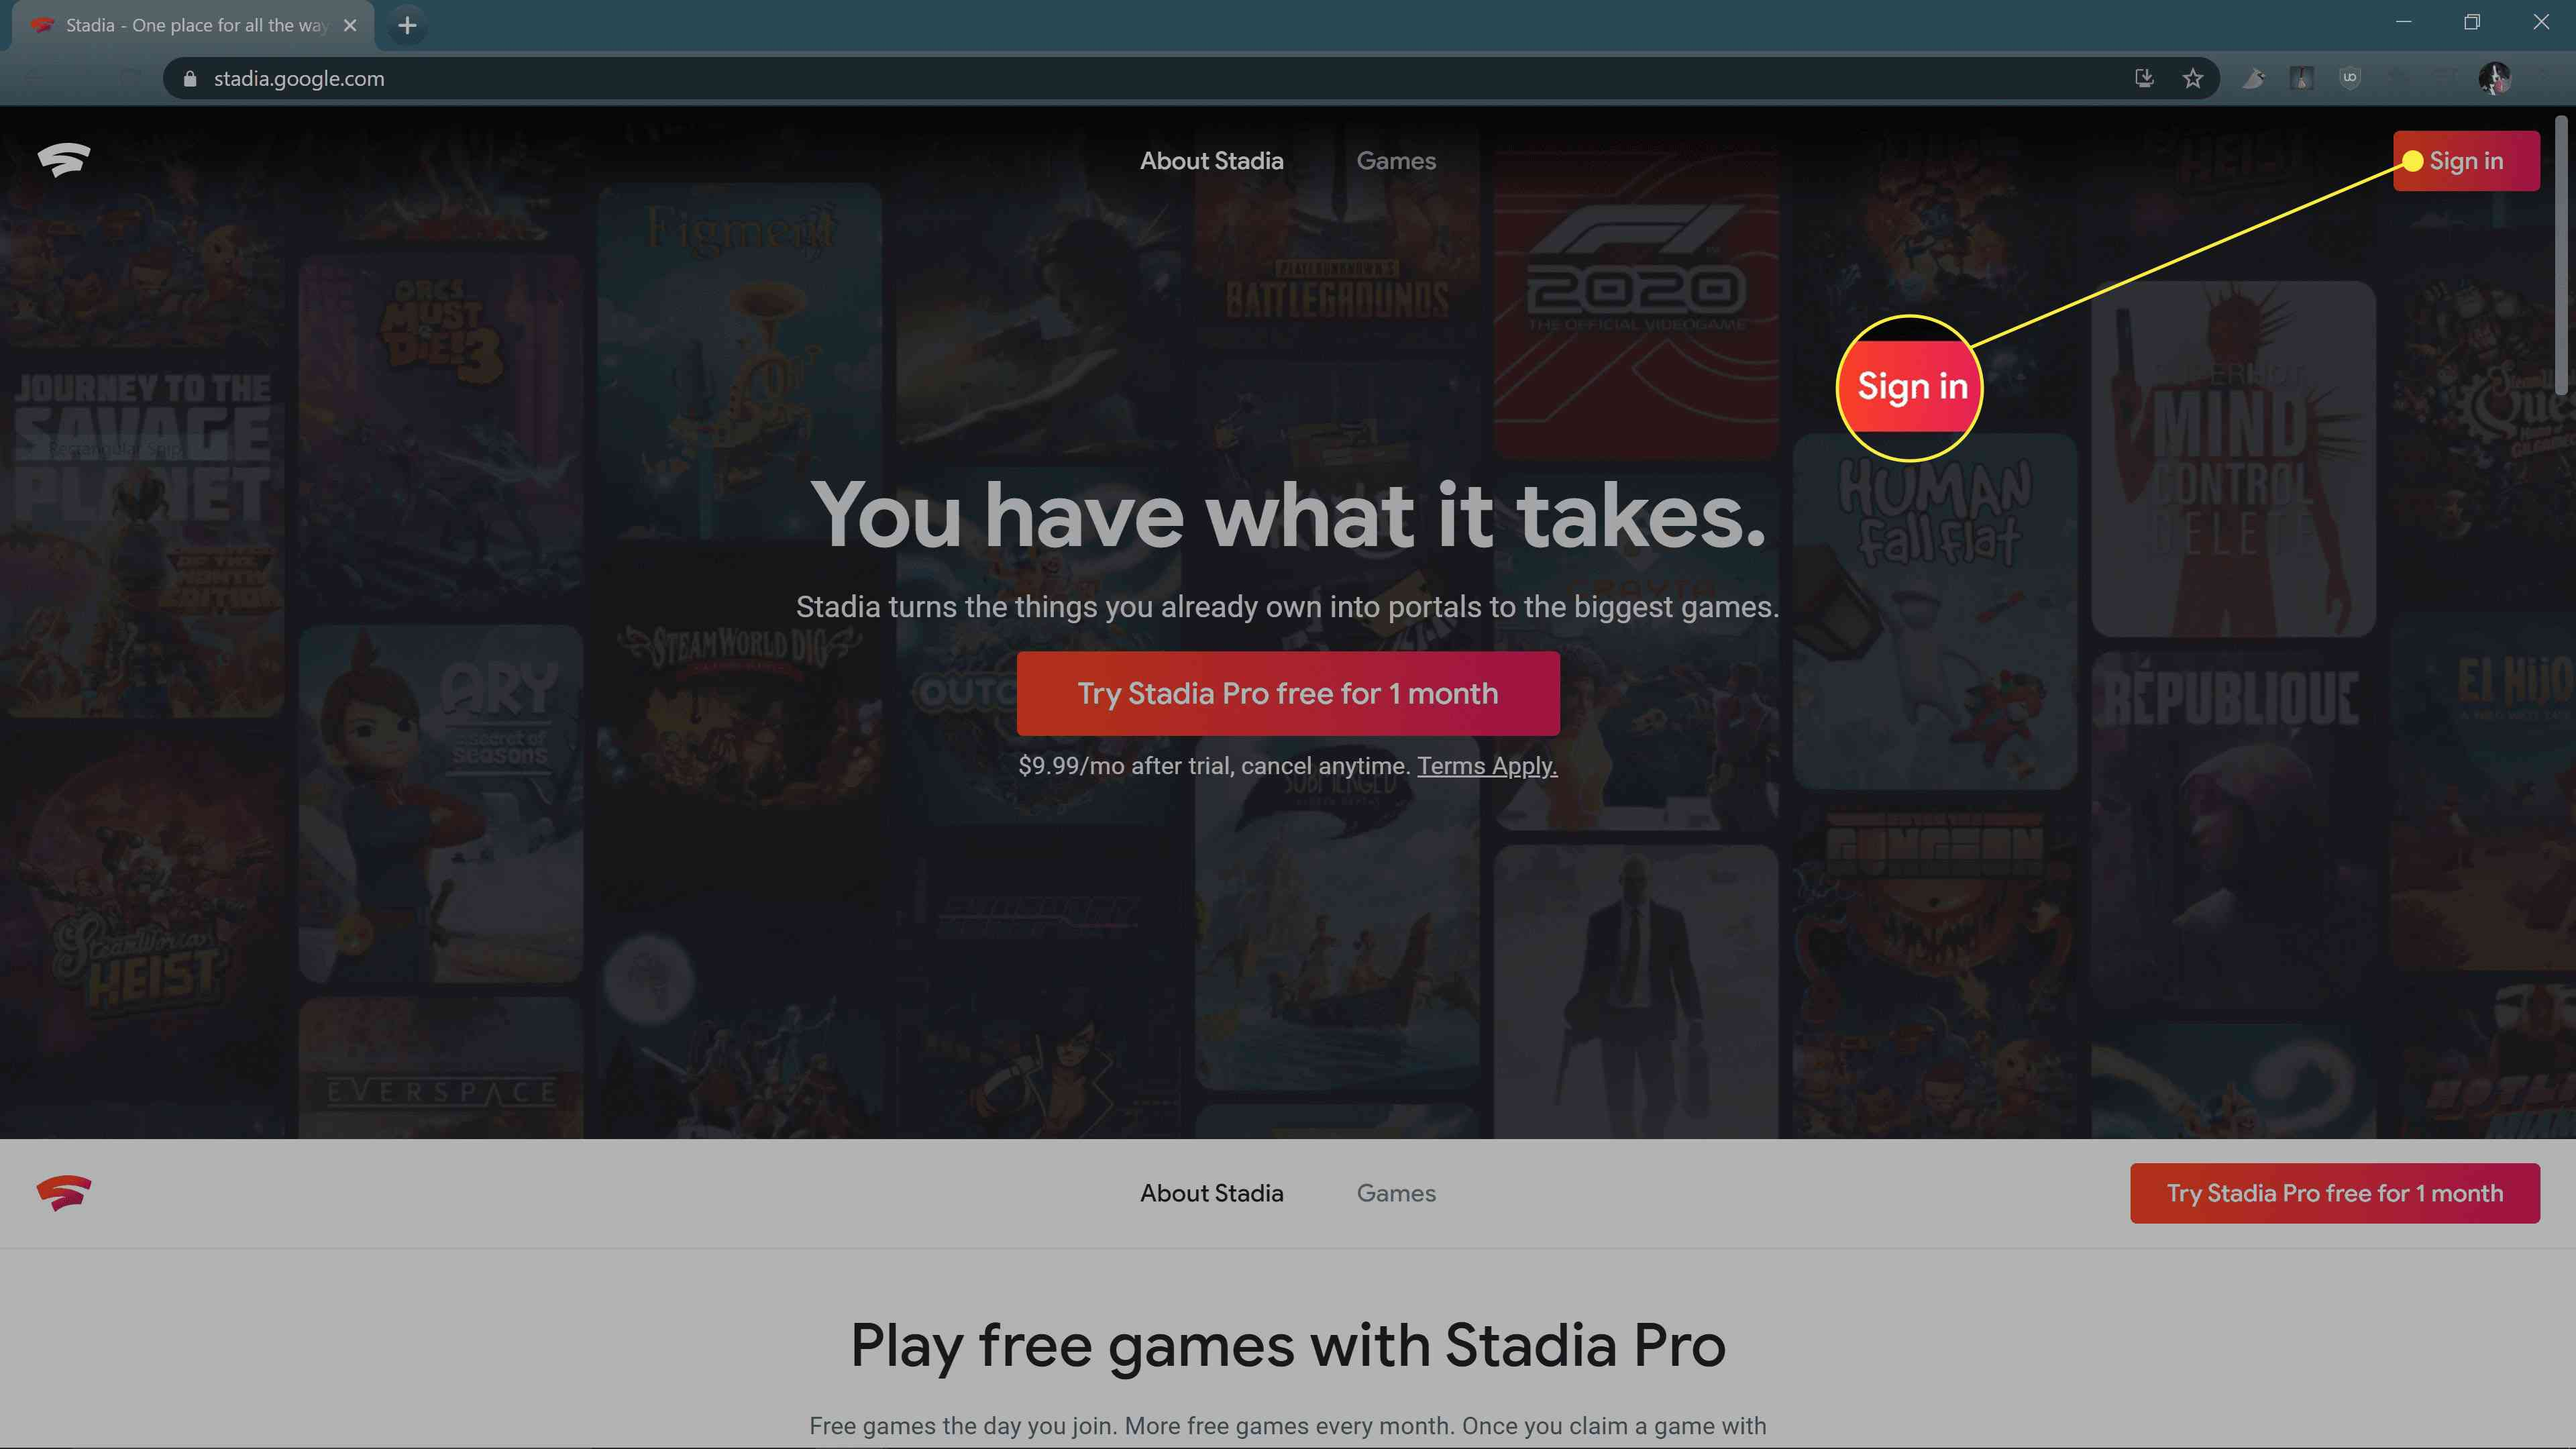 The sign in button highlighted on the Stadia website.